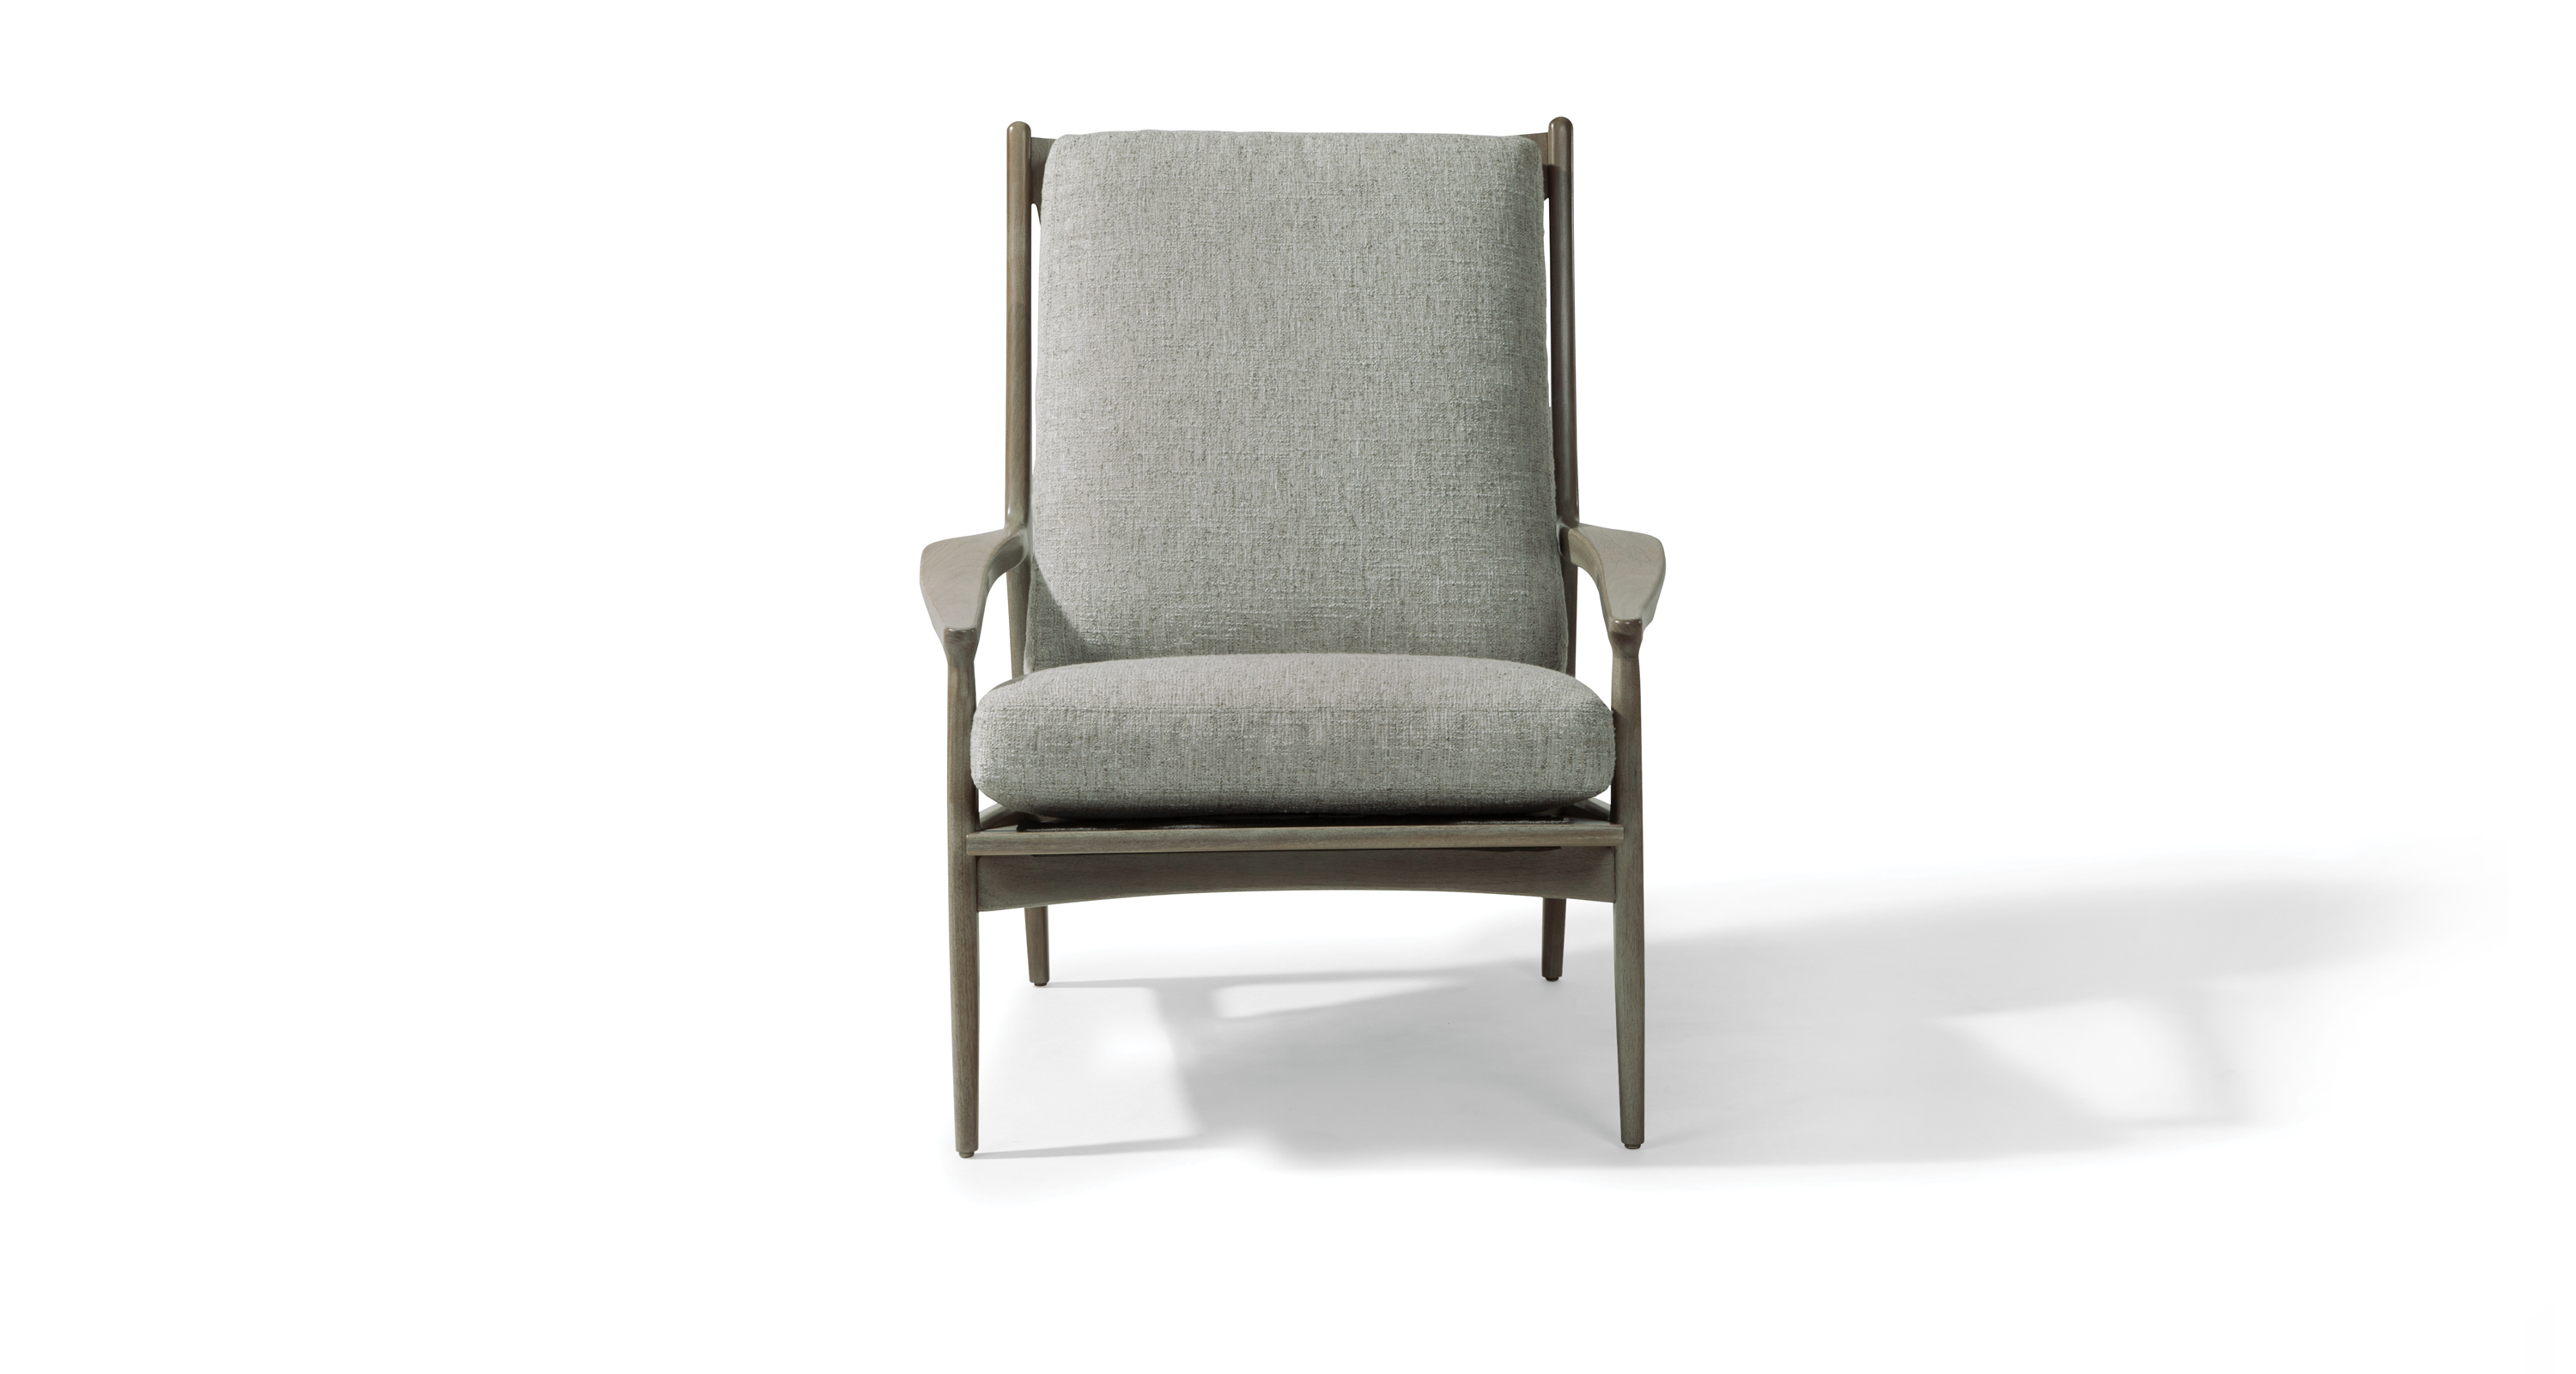 Archie Too Lounge Chair and Ottoman